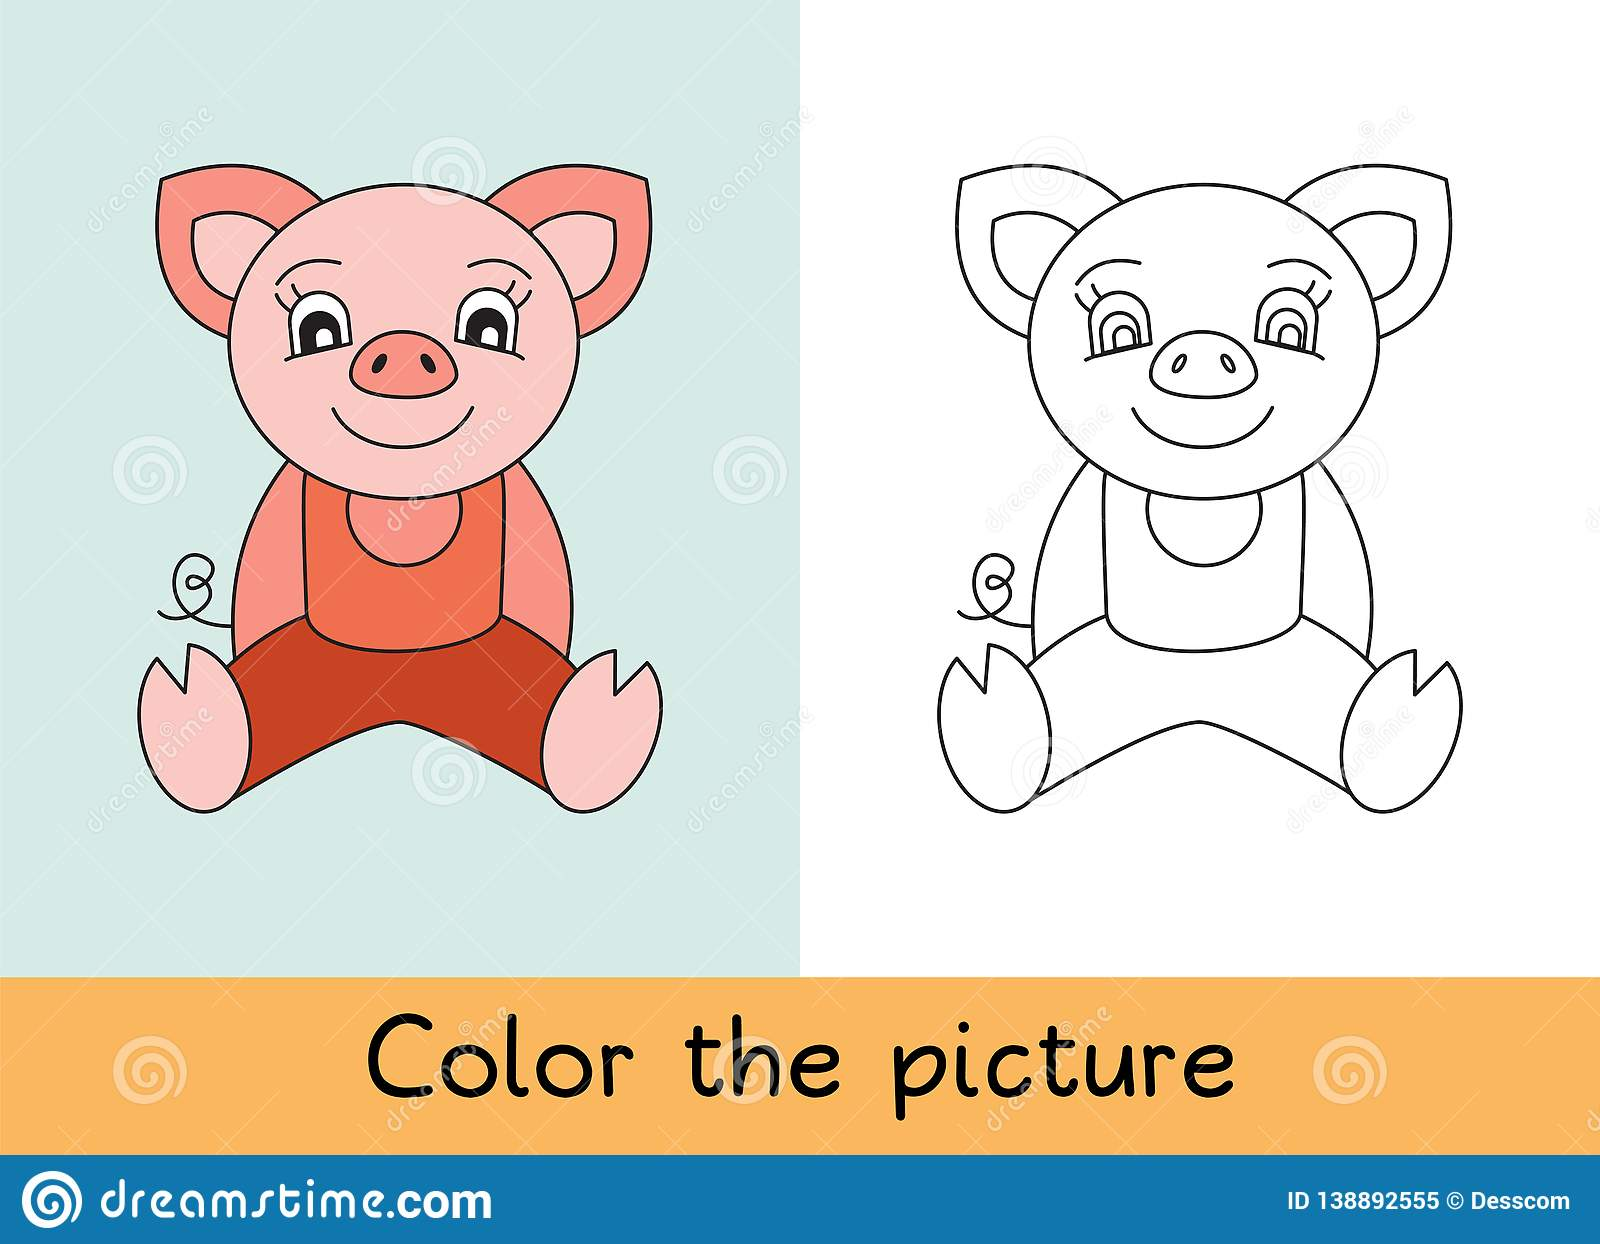 Coloring Book. Pig. Cartoon Animall. Kids Game. Color ...